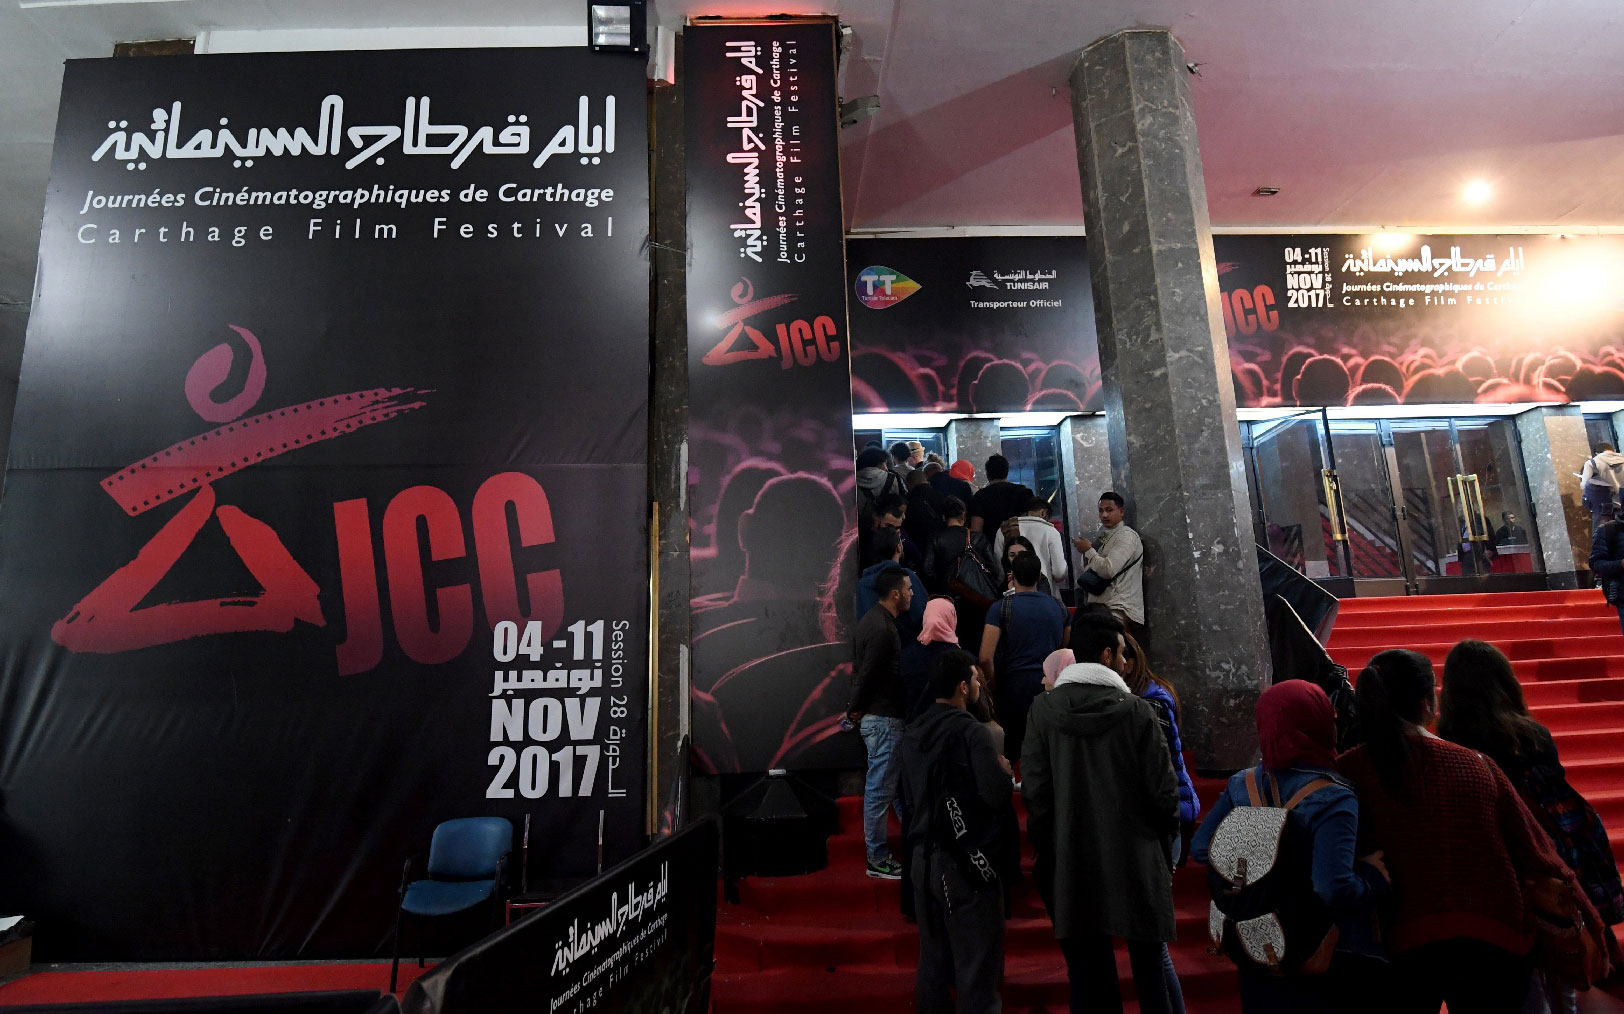 Tunisians standing in a queue outside a movie theatre in Tunis, during the 28th edition of the Carthage Film Festival on November 08, 2017.